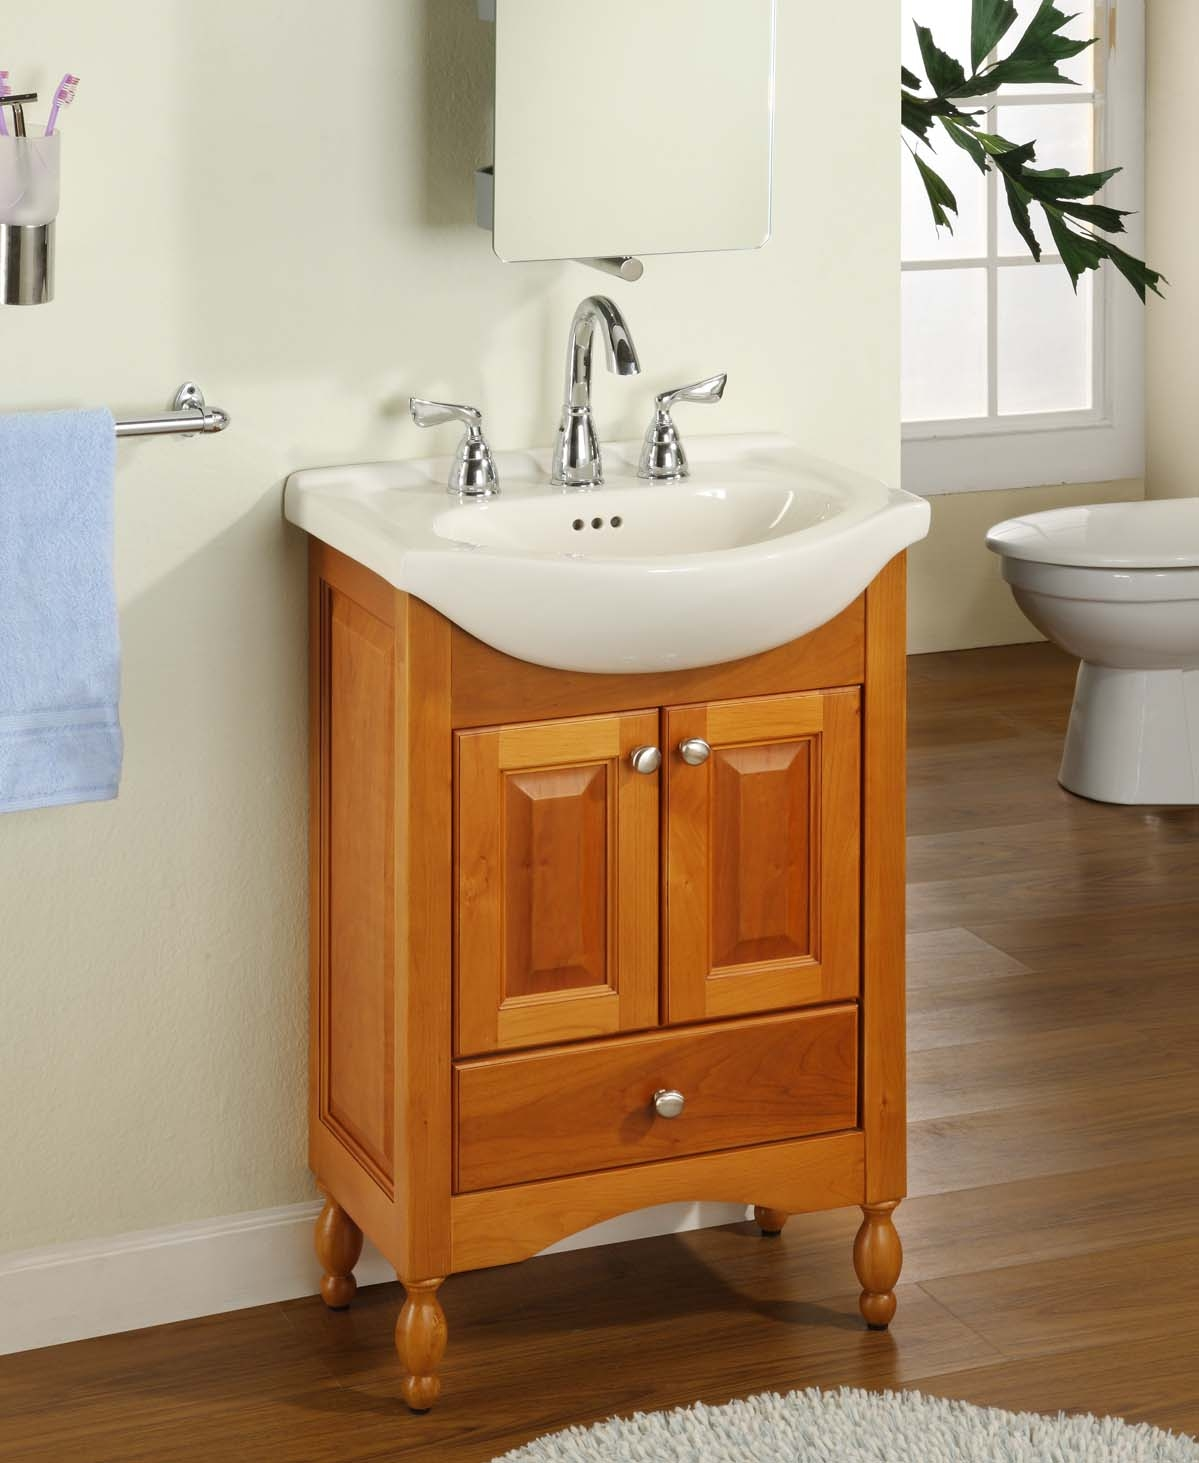 Narrow Depth Bathroom Sink Cabinetnarrow depth bathroom vanity cabinet doorje